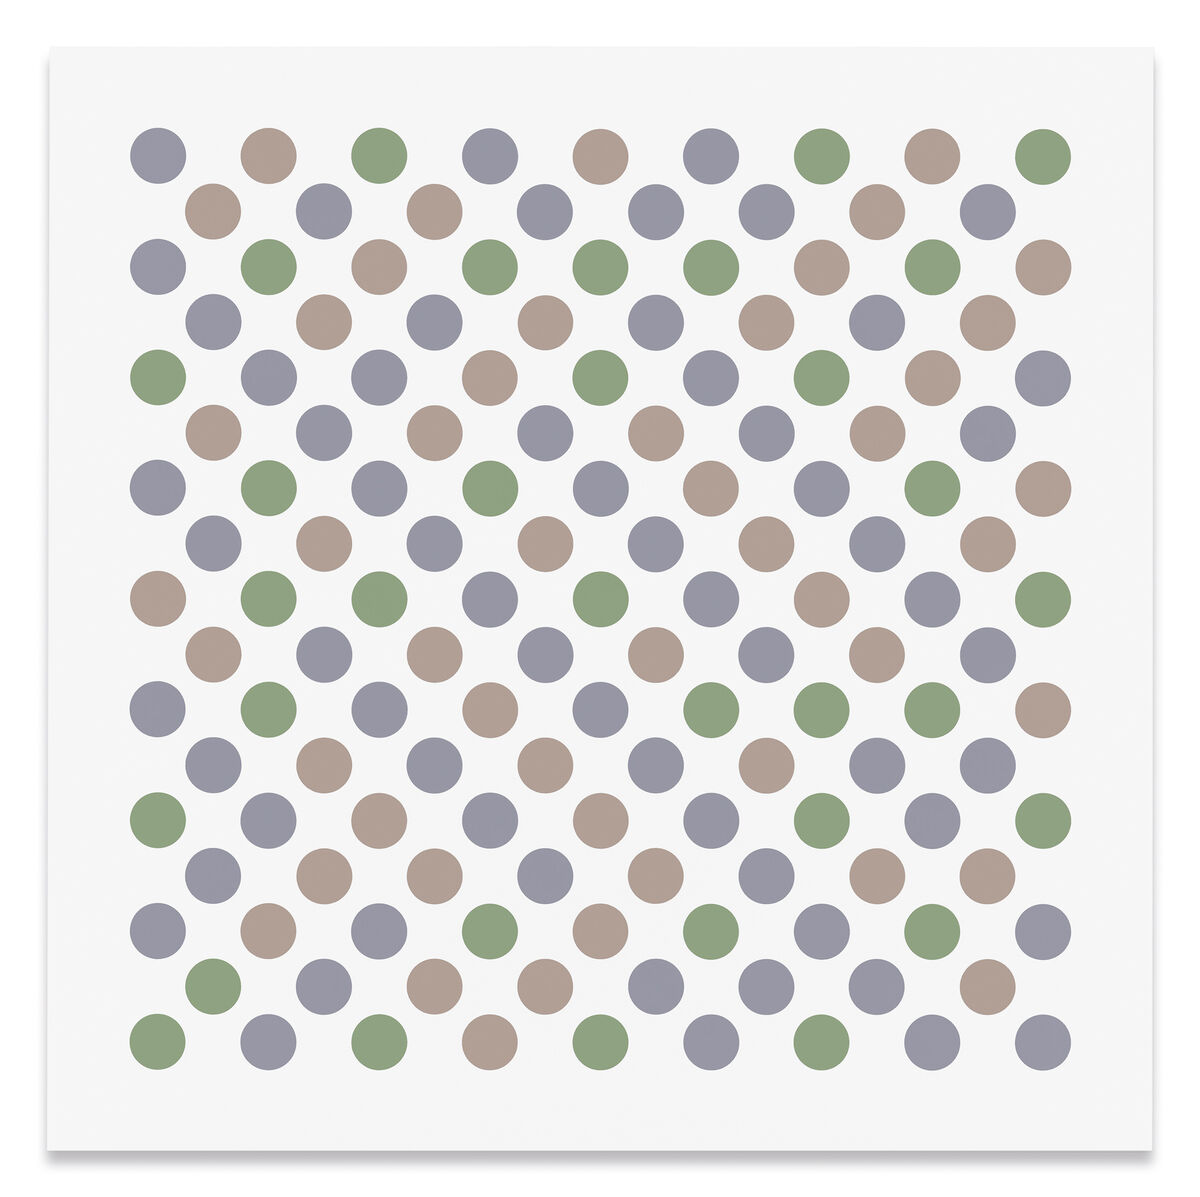 Bridget Riley, Measure for Measure 25, 2018. Courtesy of Sprüth Magers.